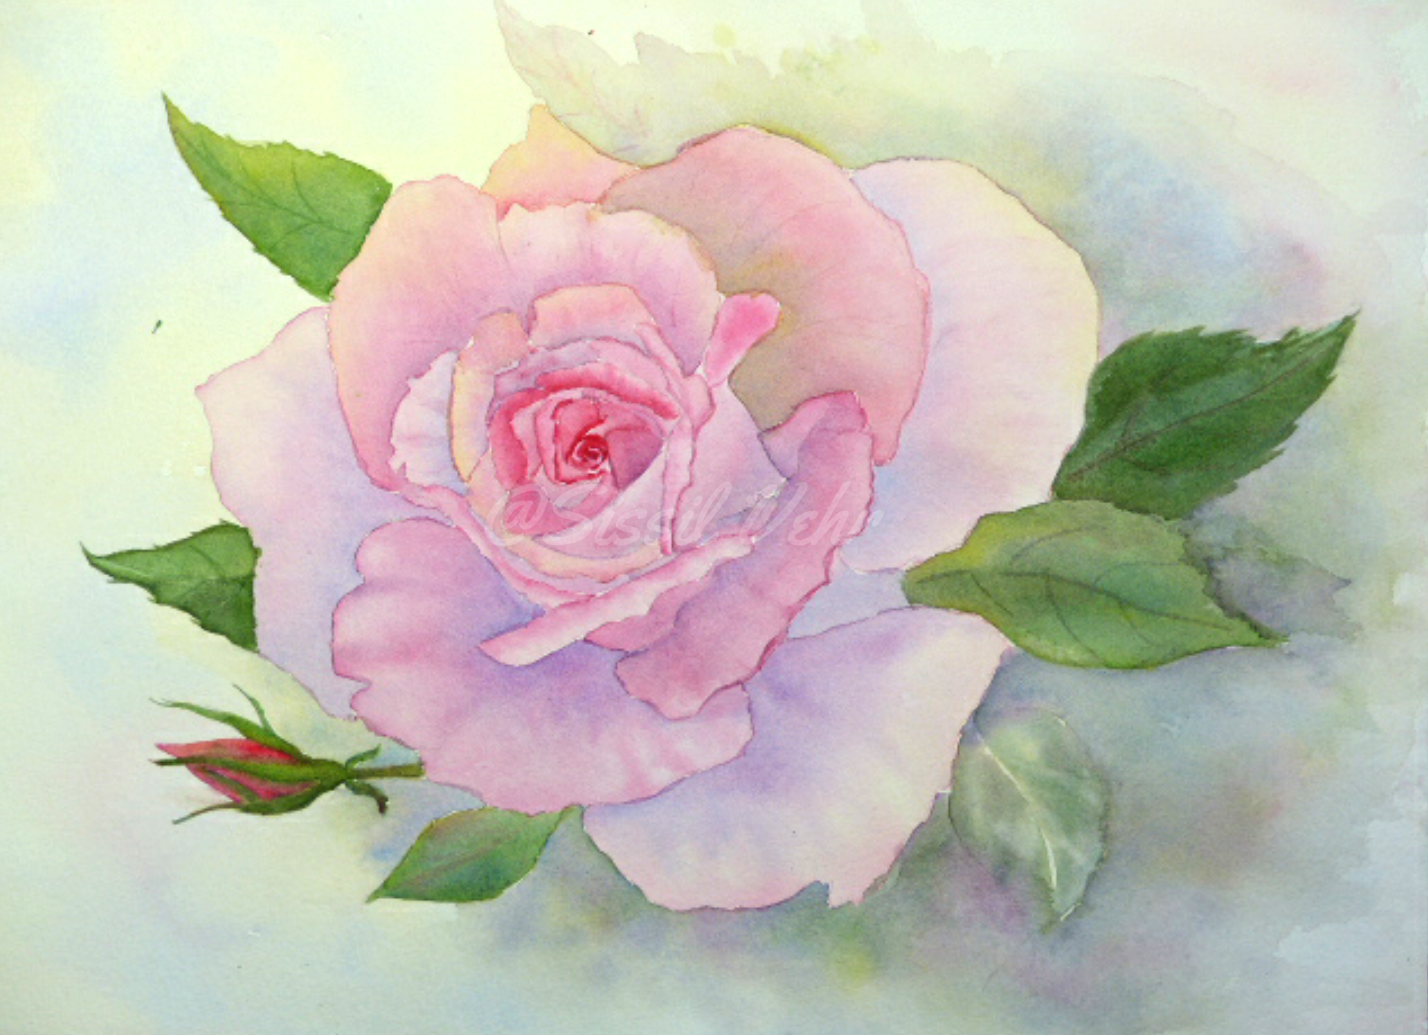 Aquarelle : Rose du matin